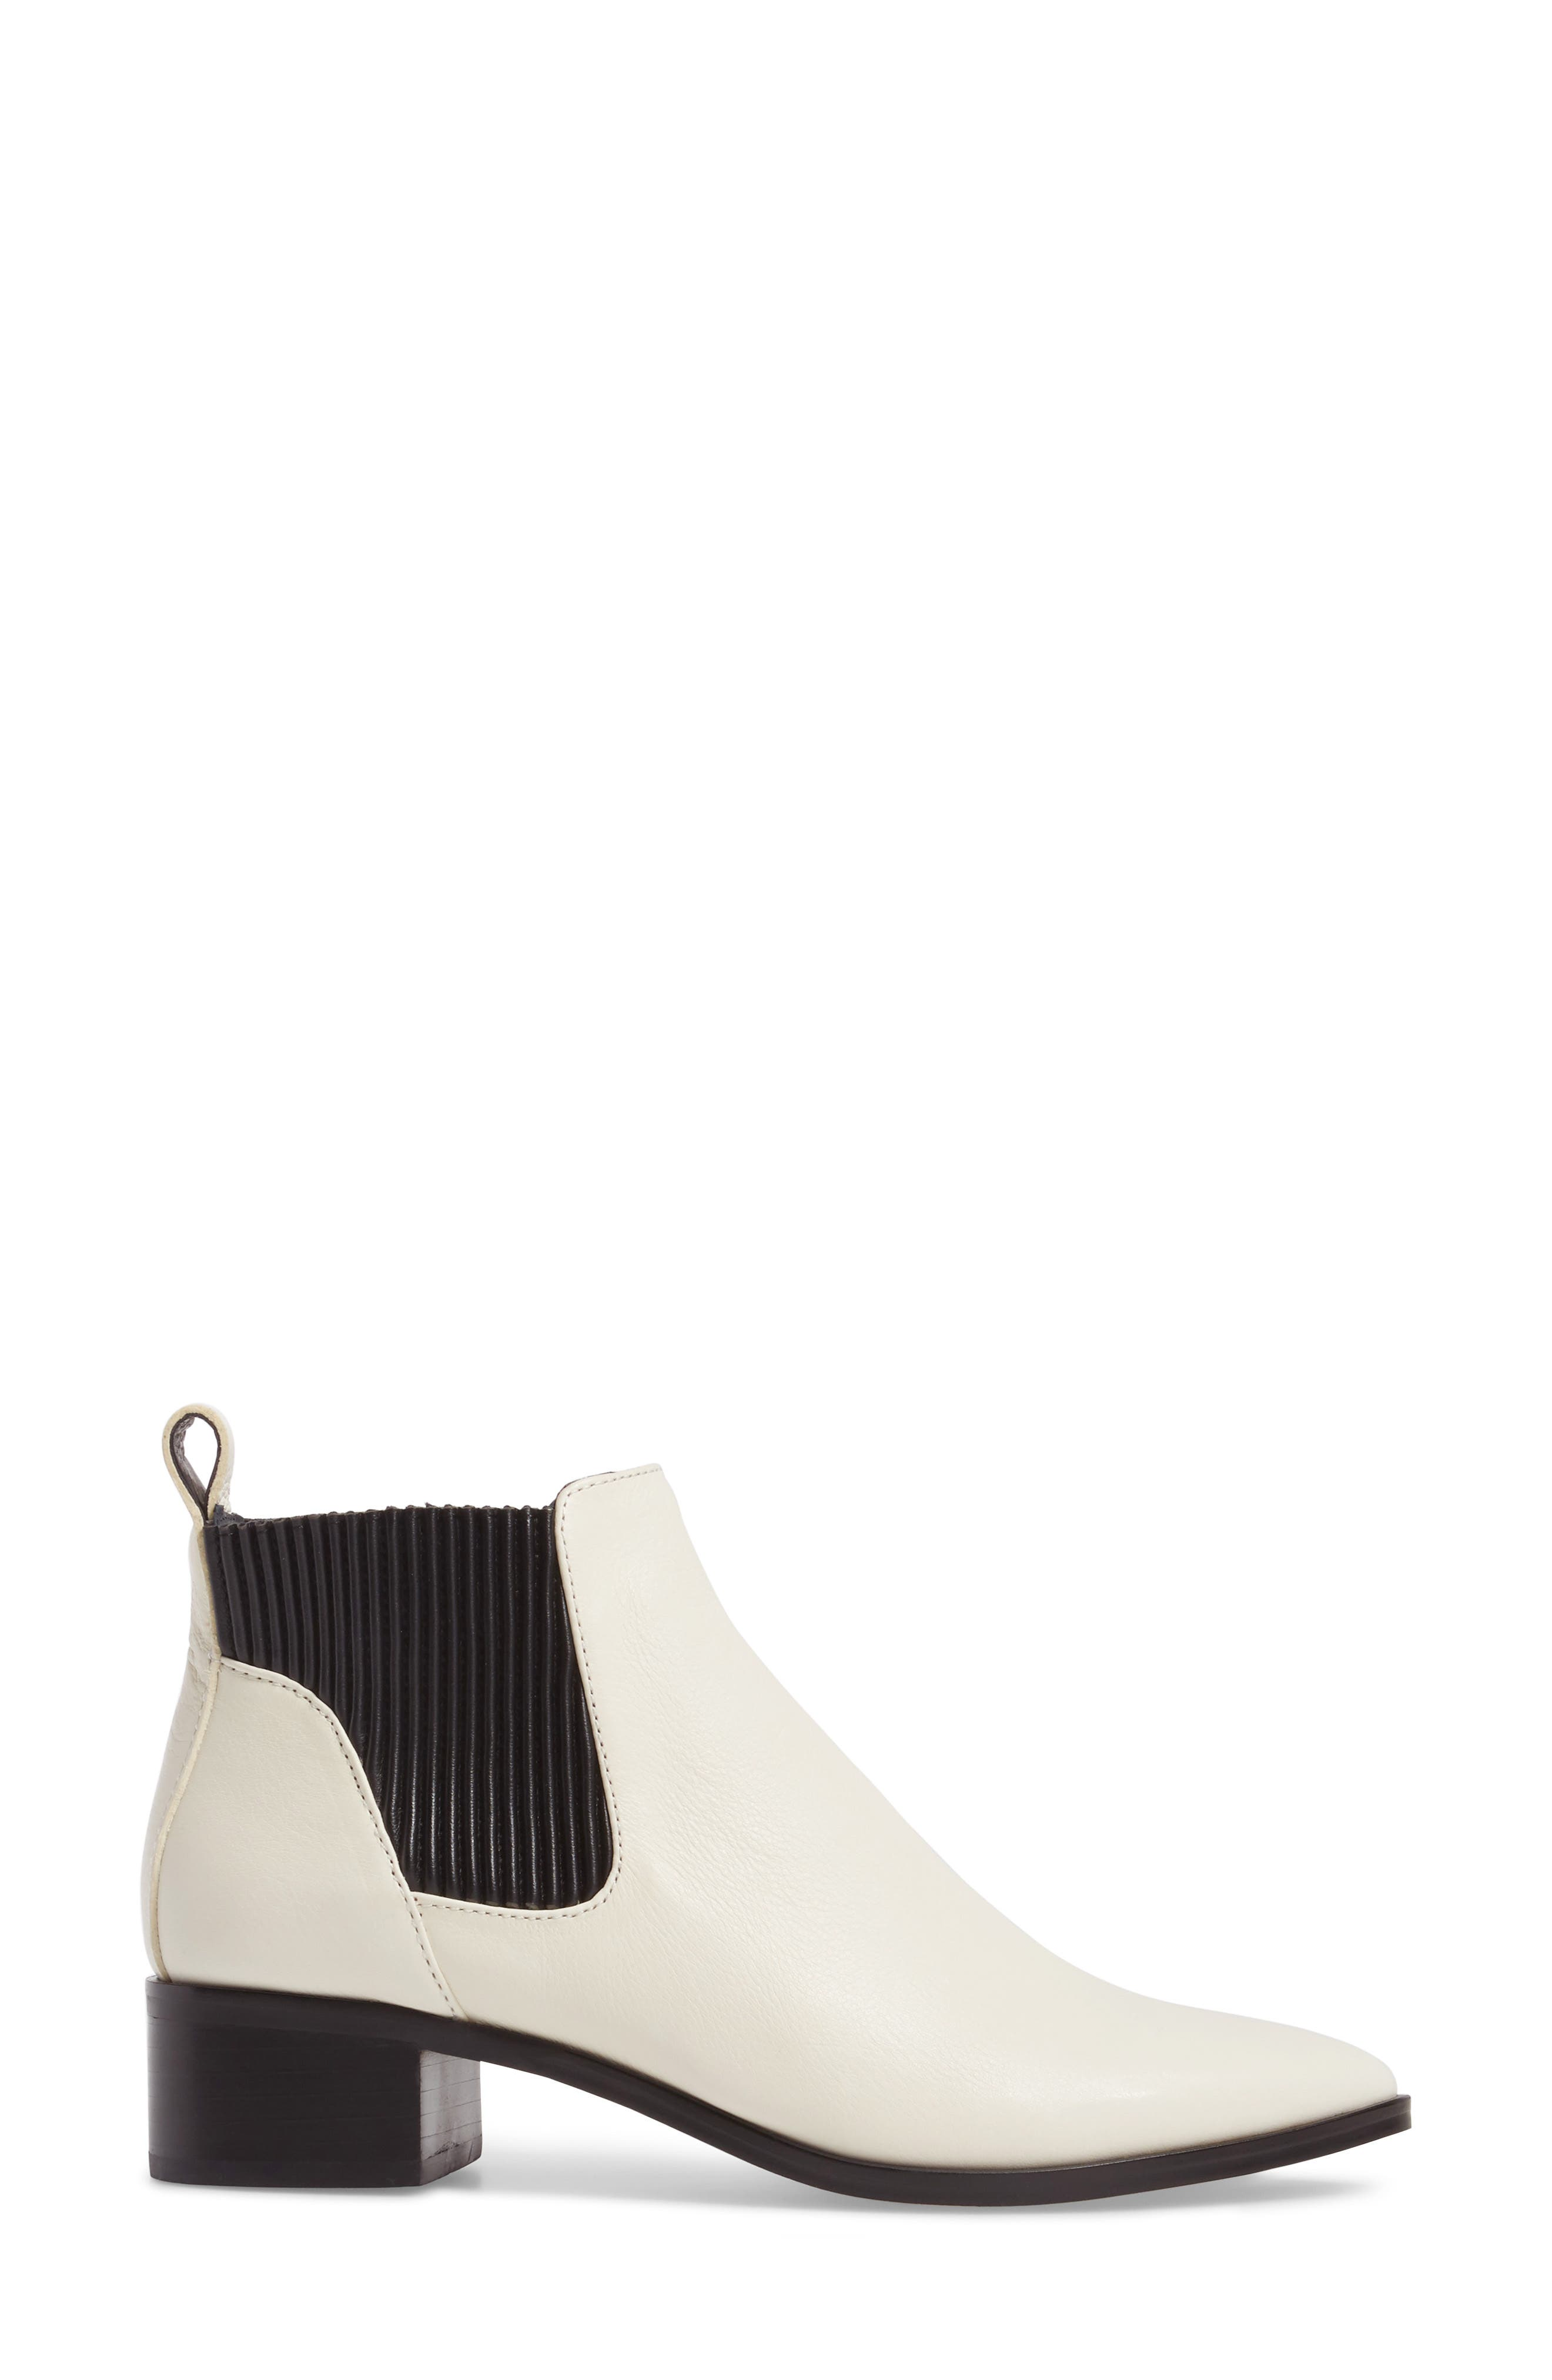 Macie Pointy Toe Chelsea Bootie,                             Alternate thumbnail 3, color,                             Off White Lea